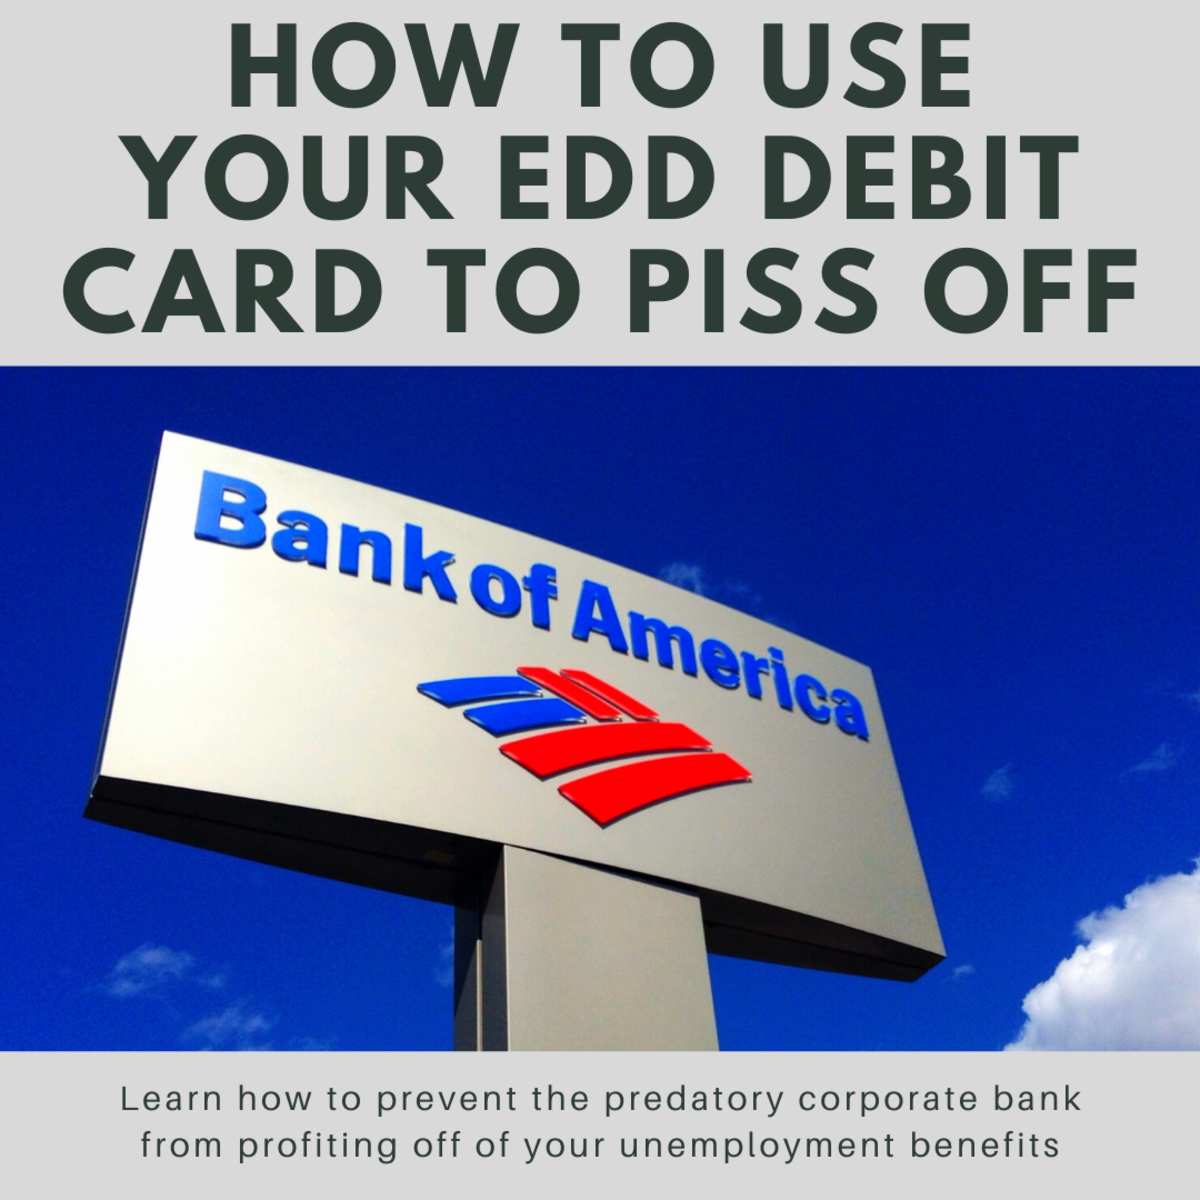 This guide will show you how to prevent Bank of America—a predatory corporate bank that nevertheless got bailed out in the 2008 financial crisis—from profiting off of your unemployment benefits.